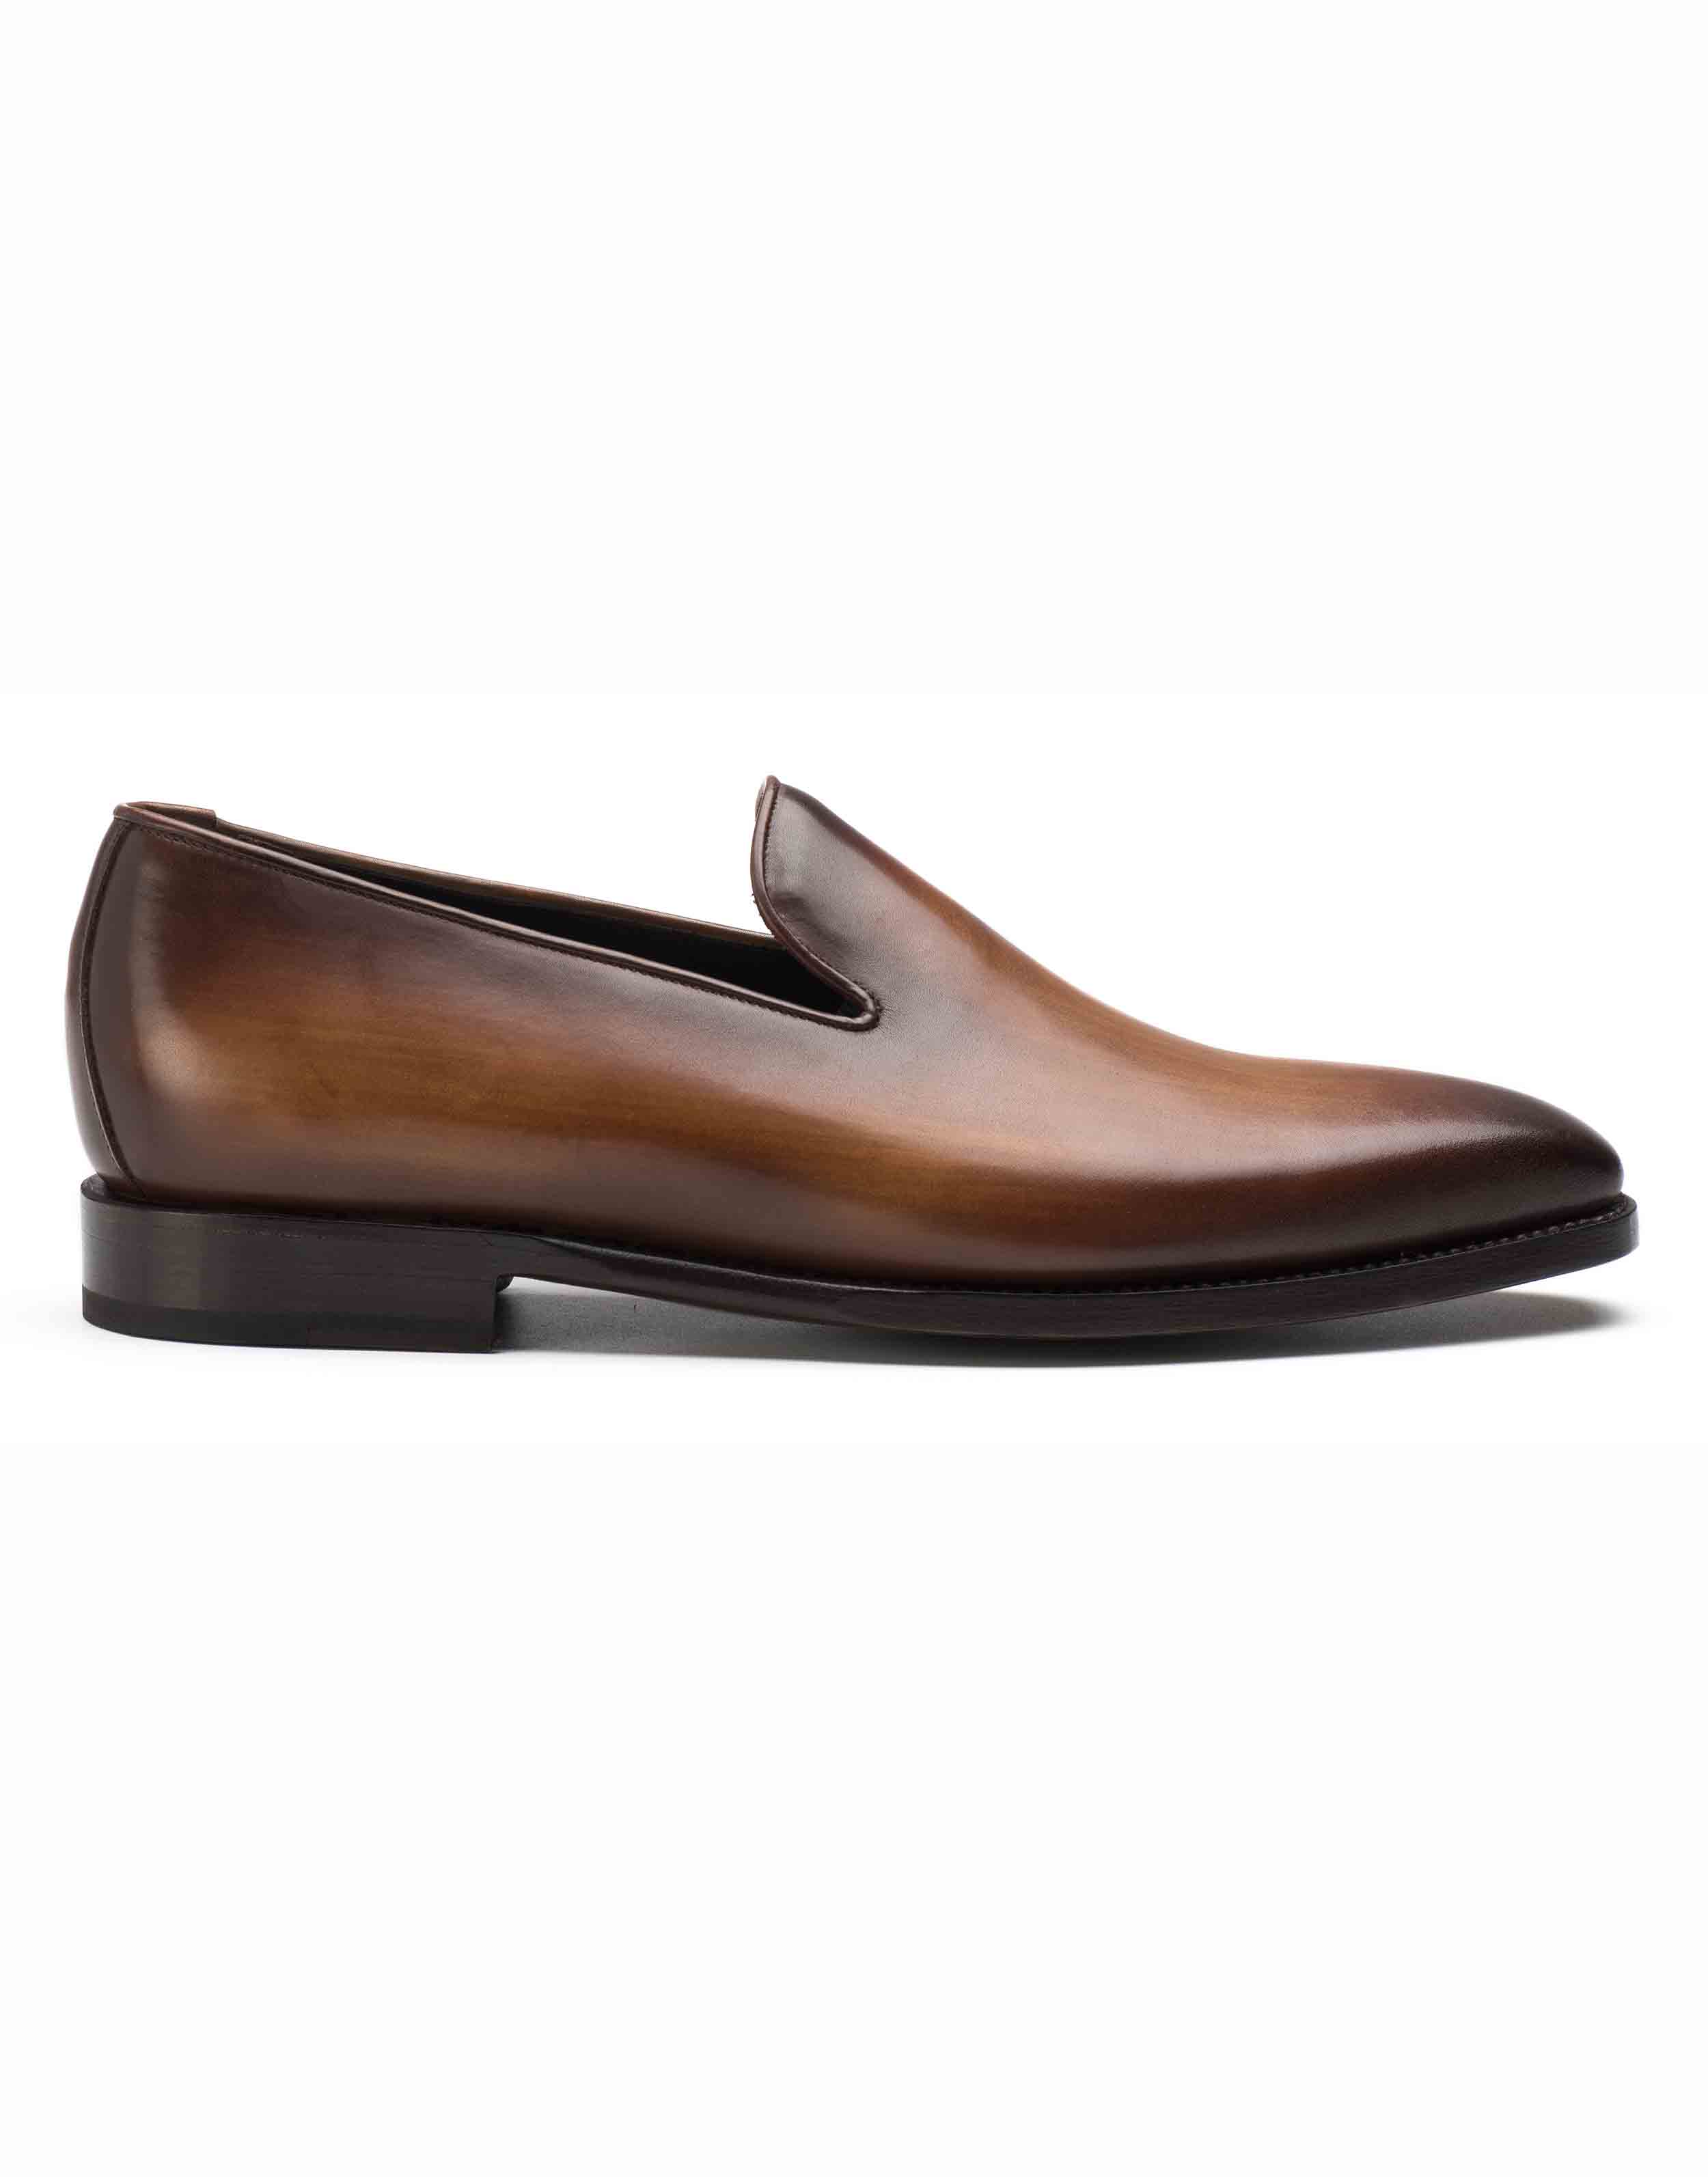 BROWN LOAFERS1